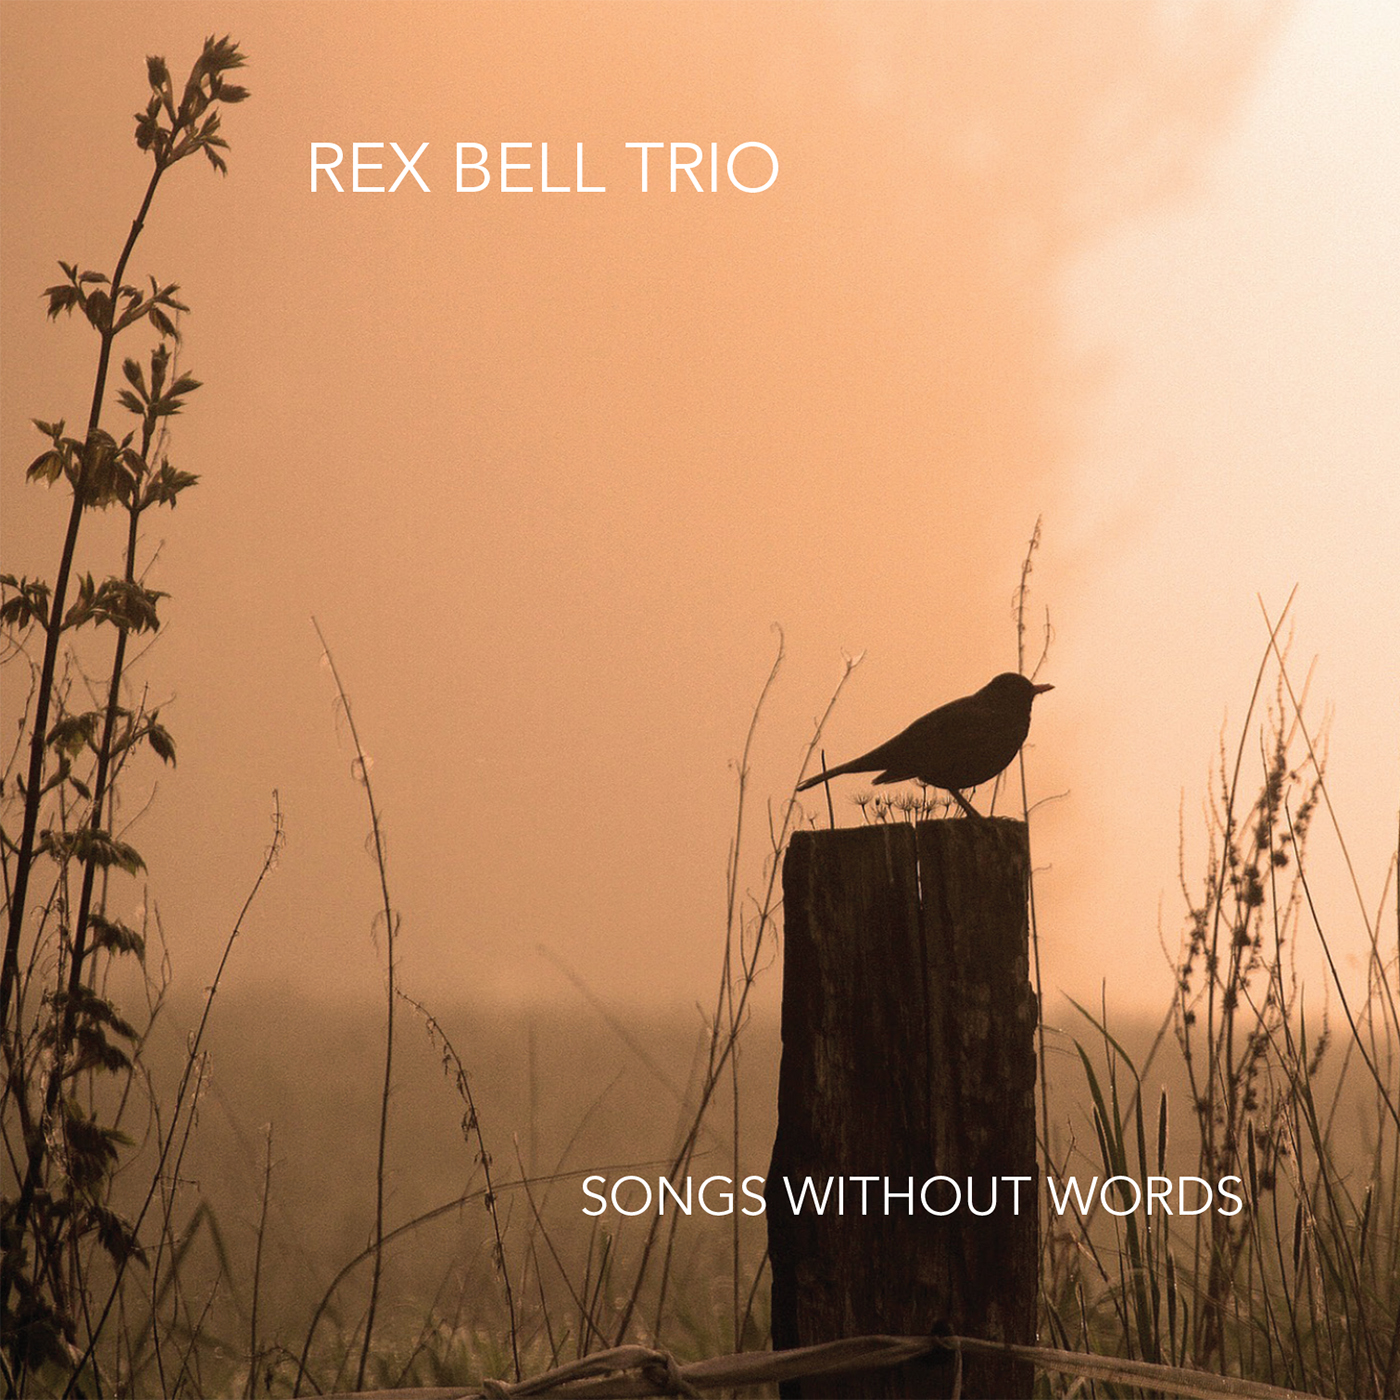 Rex-Bell-Trio-Songs-Without-Words-CD-Baby-Cover-Art